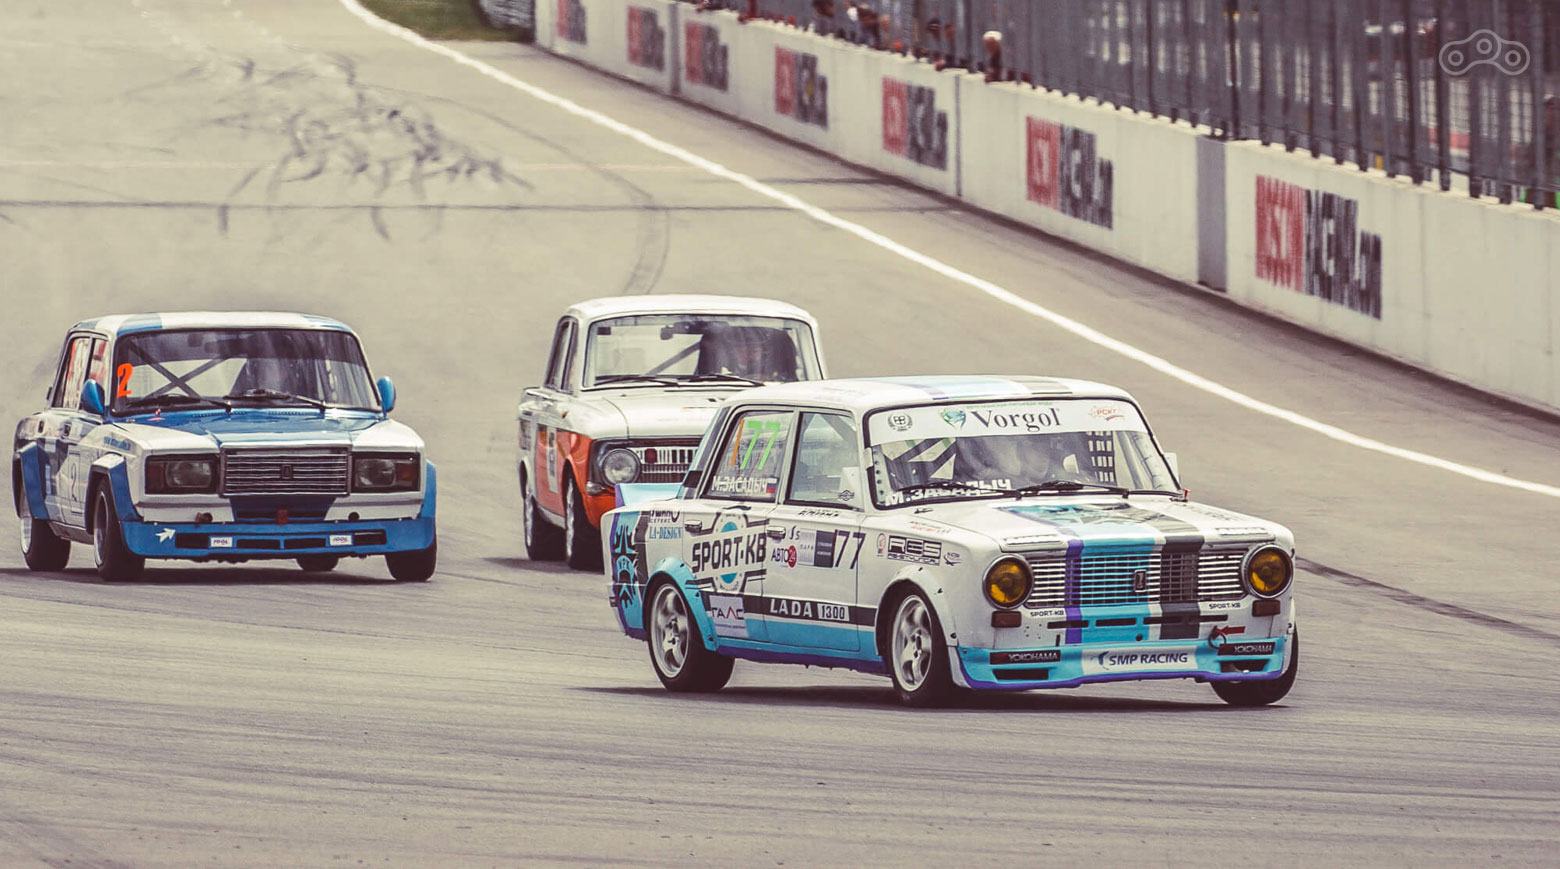 Moscow Classic Grand Prix Race 2014